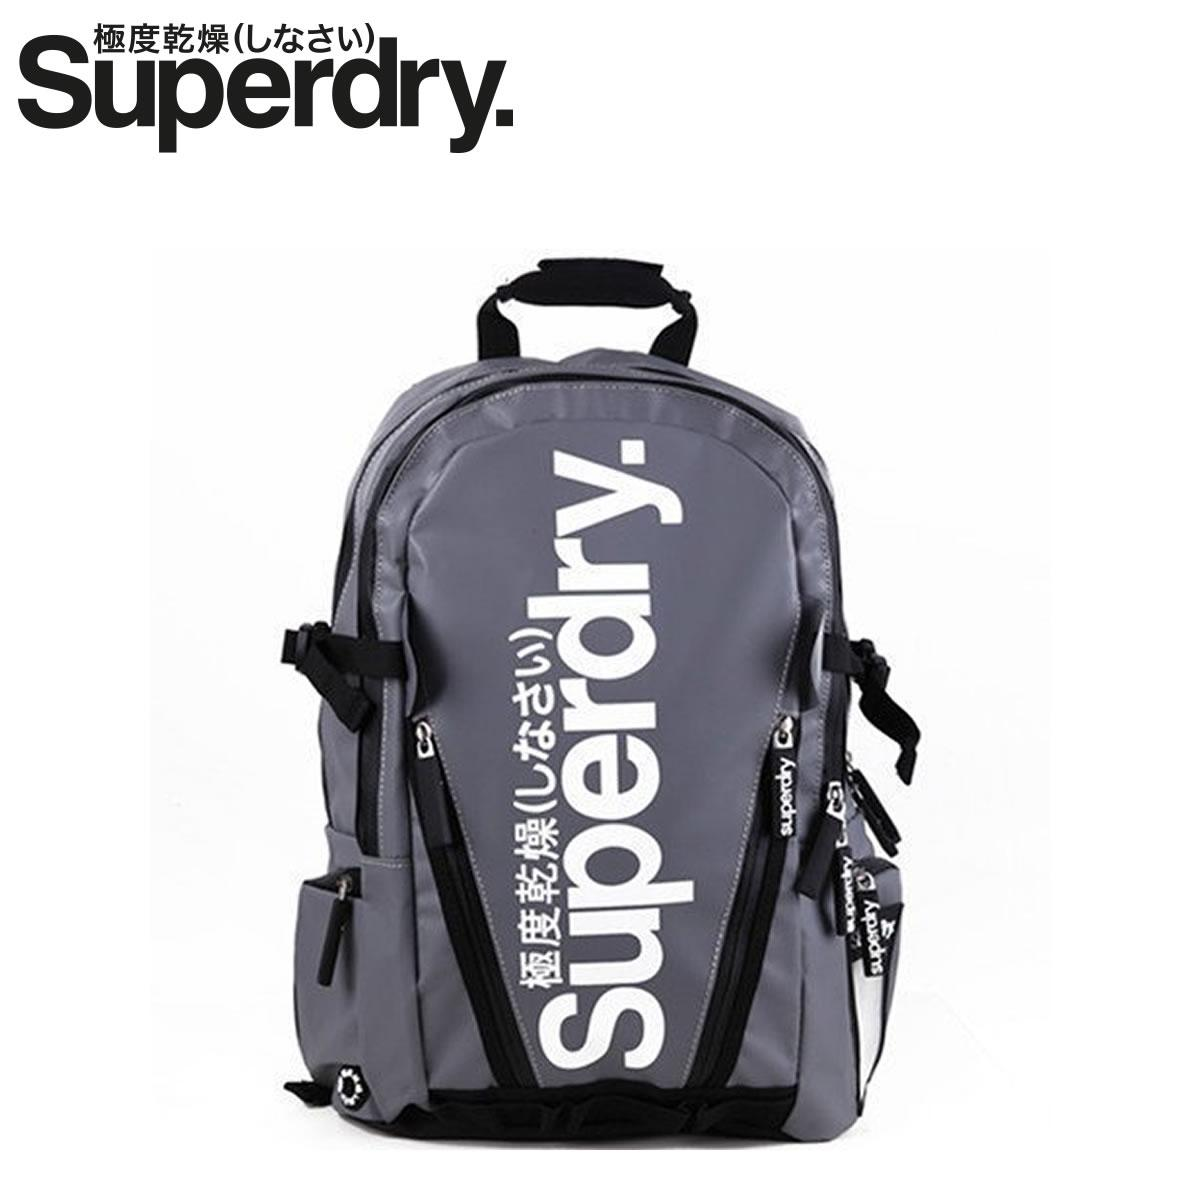 b9c0d4a09 [SUPERDRY BACKPACK] 100% Authentic Waterproof Heavy Duty Multi-function  21L, 17inch